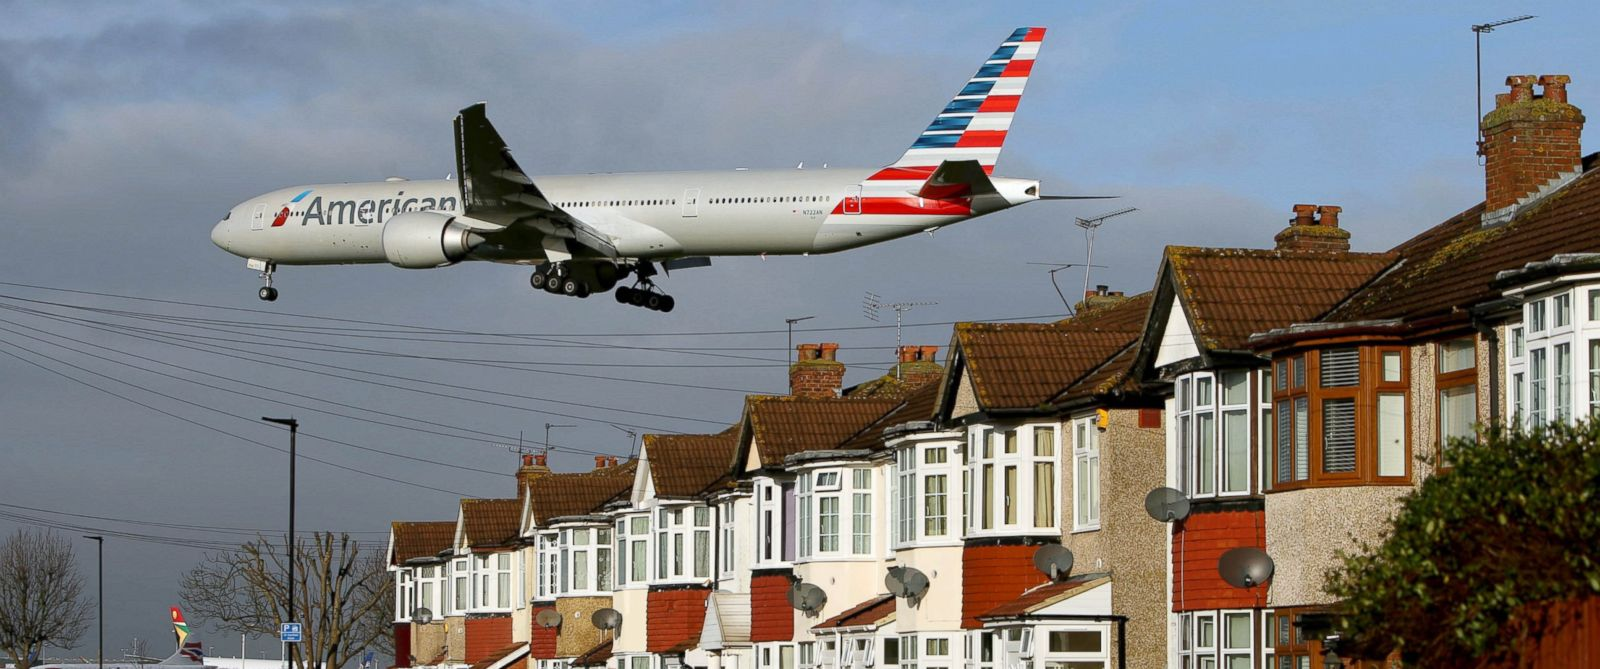 PHOTO: An American Airlines Boeing 777-323 plane lands over houses in Myrtle Avenue near Heathrow Airport, west London, Jan. 4, 2016.